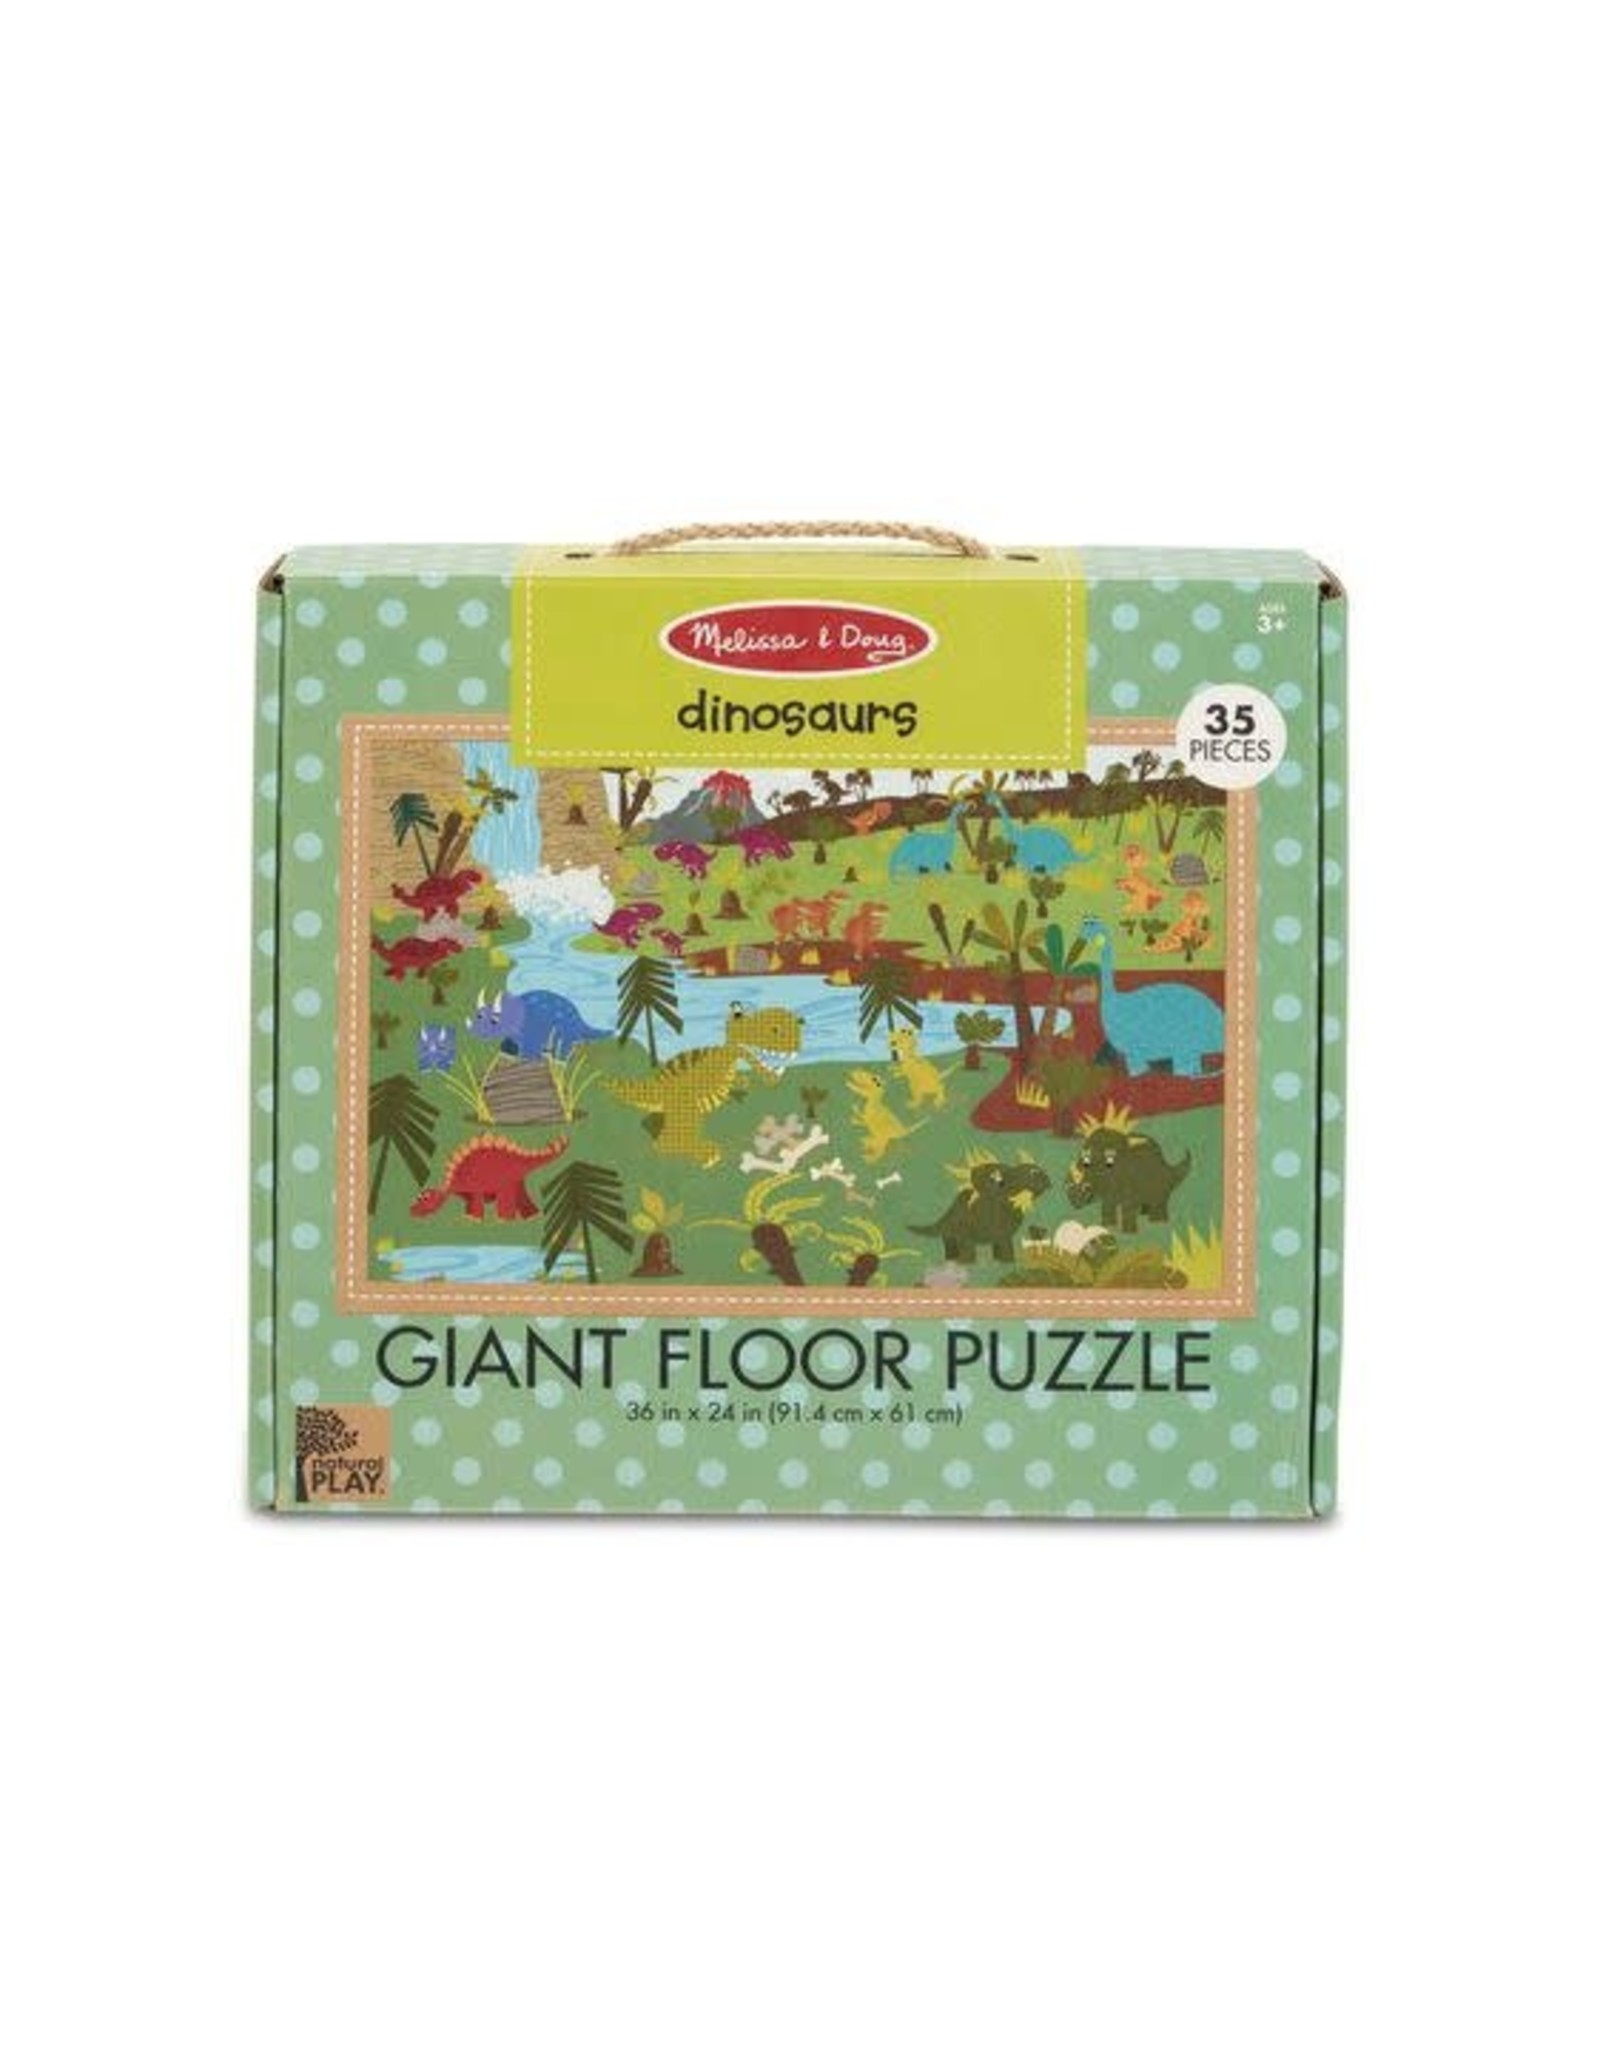 NP Giant Floor Puzzle - Dinosaurs